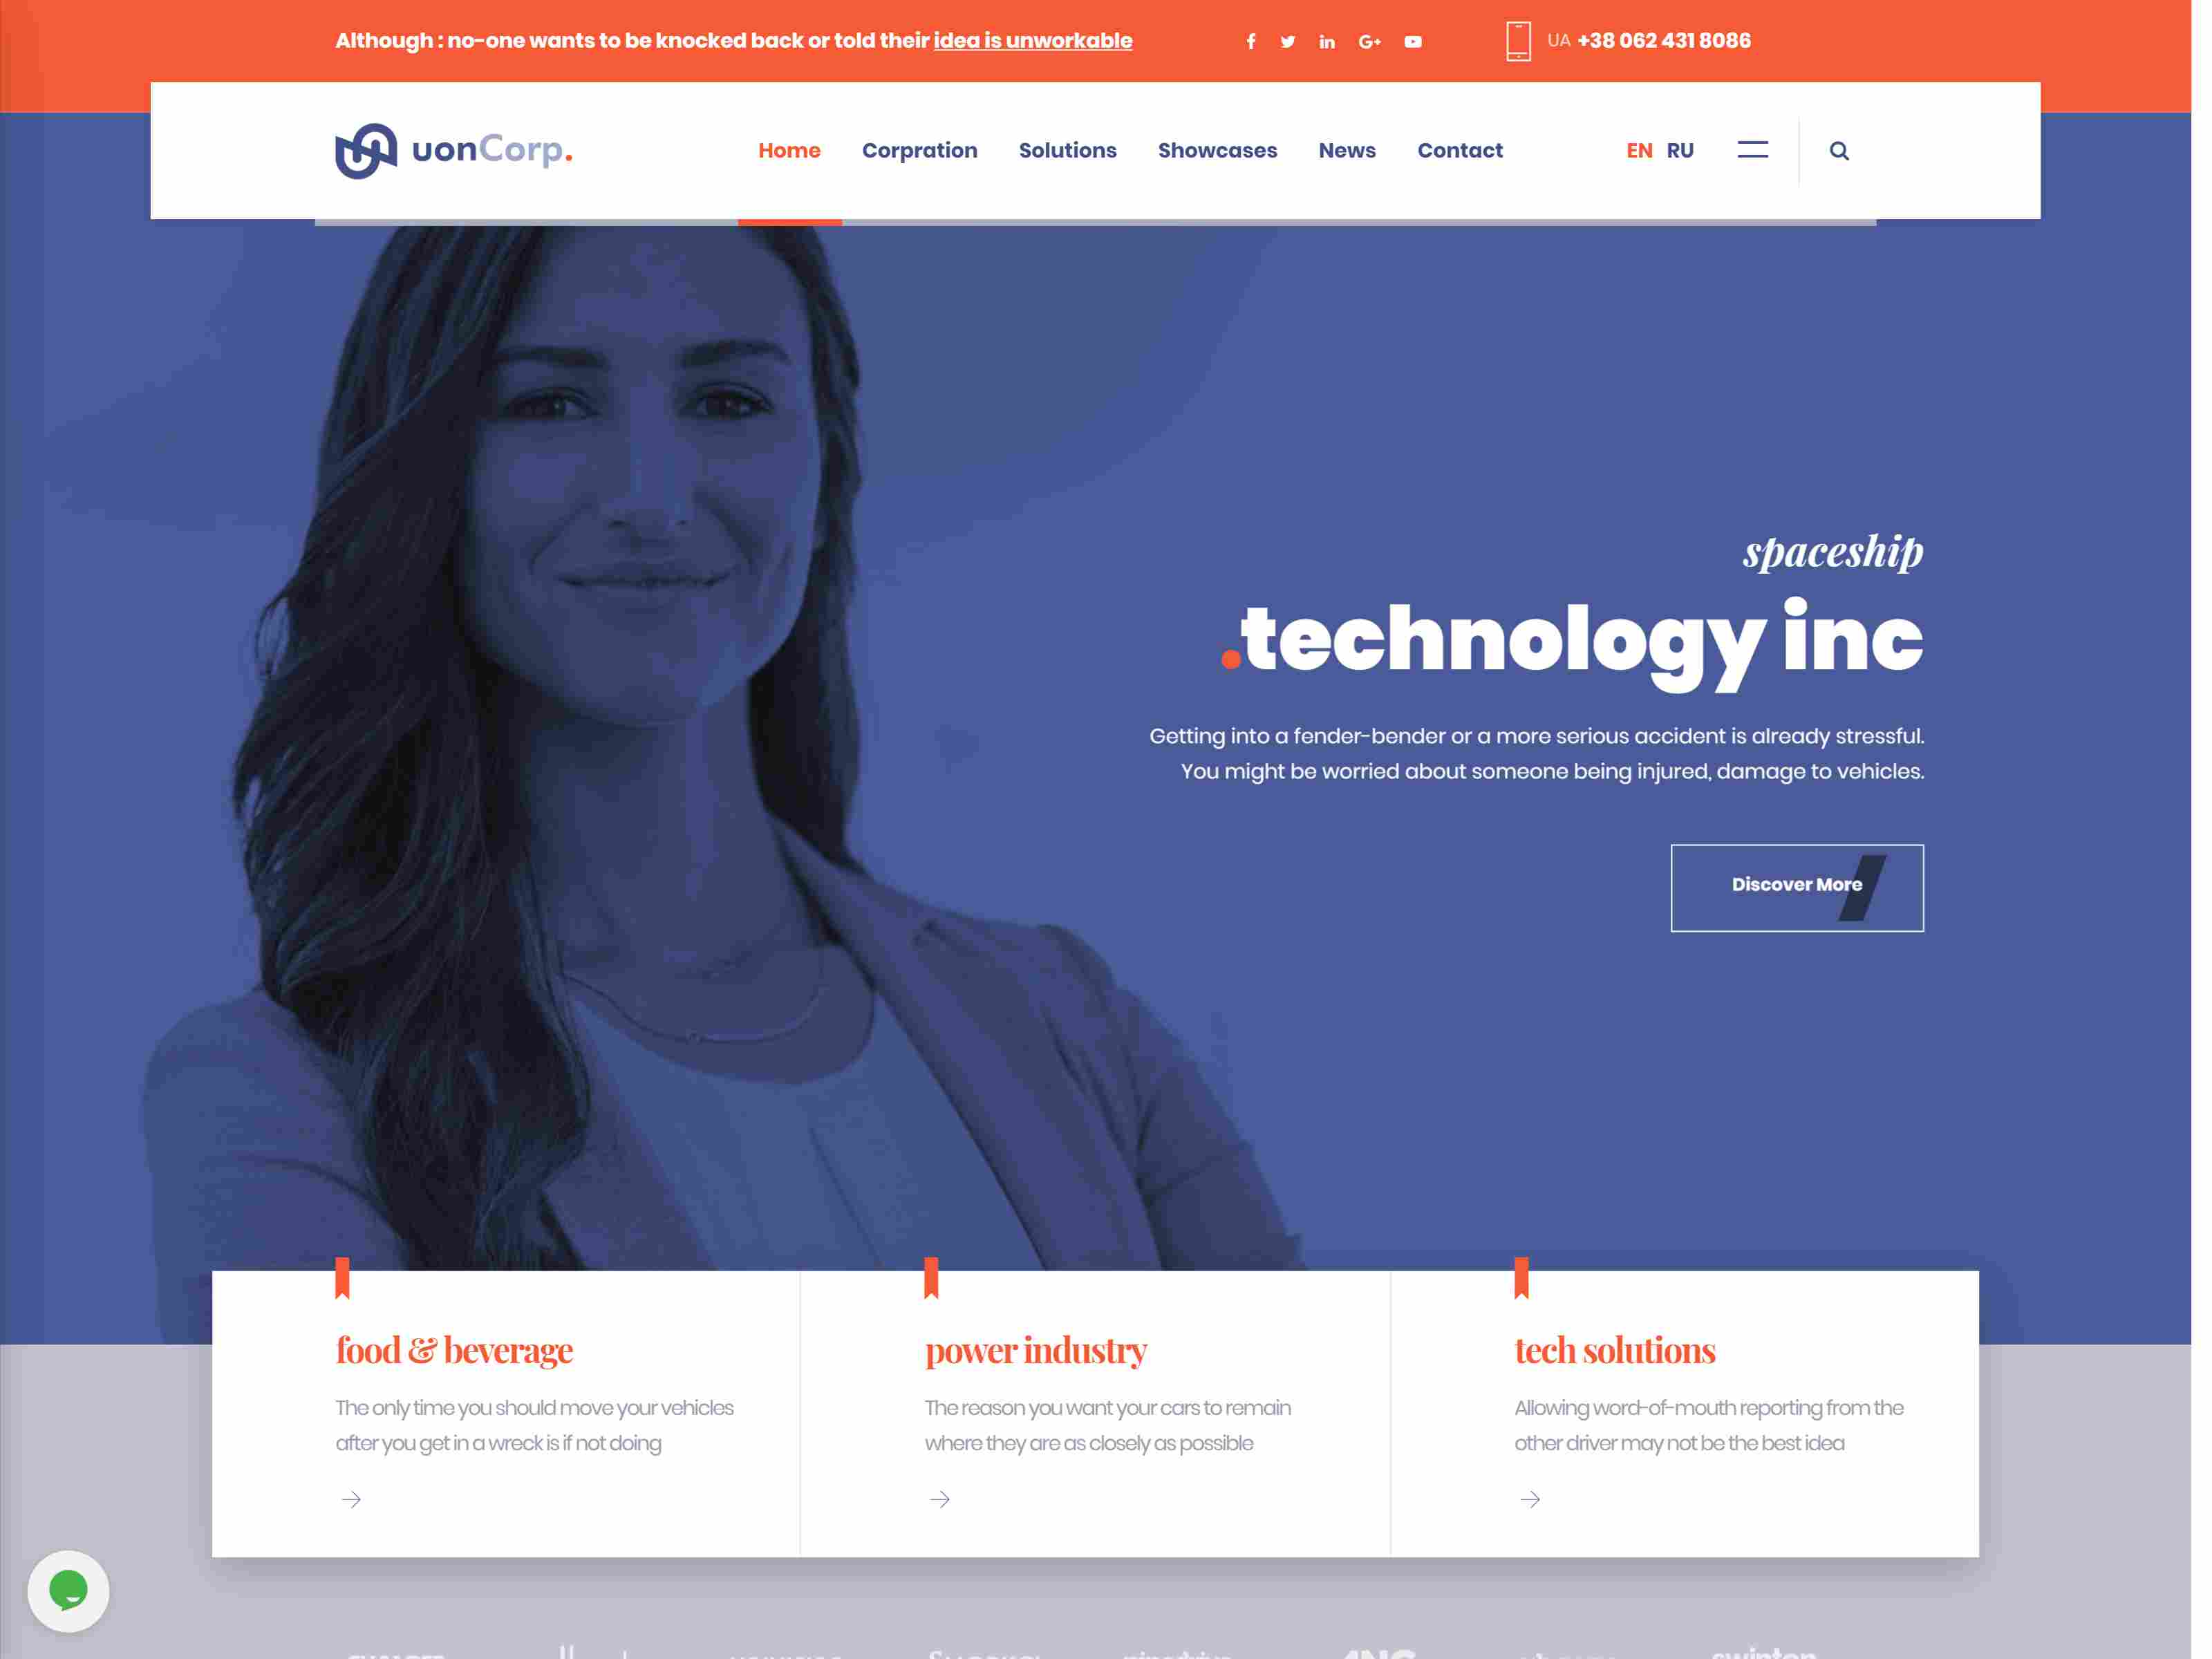 Uon Corp | Business Solutions Consulting Companies Joomla Template